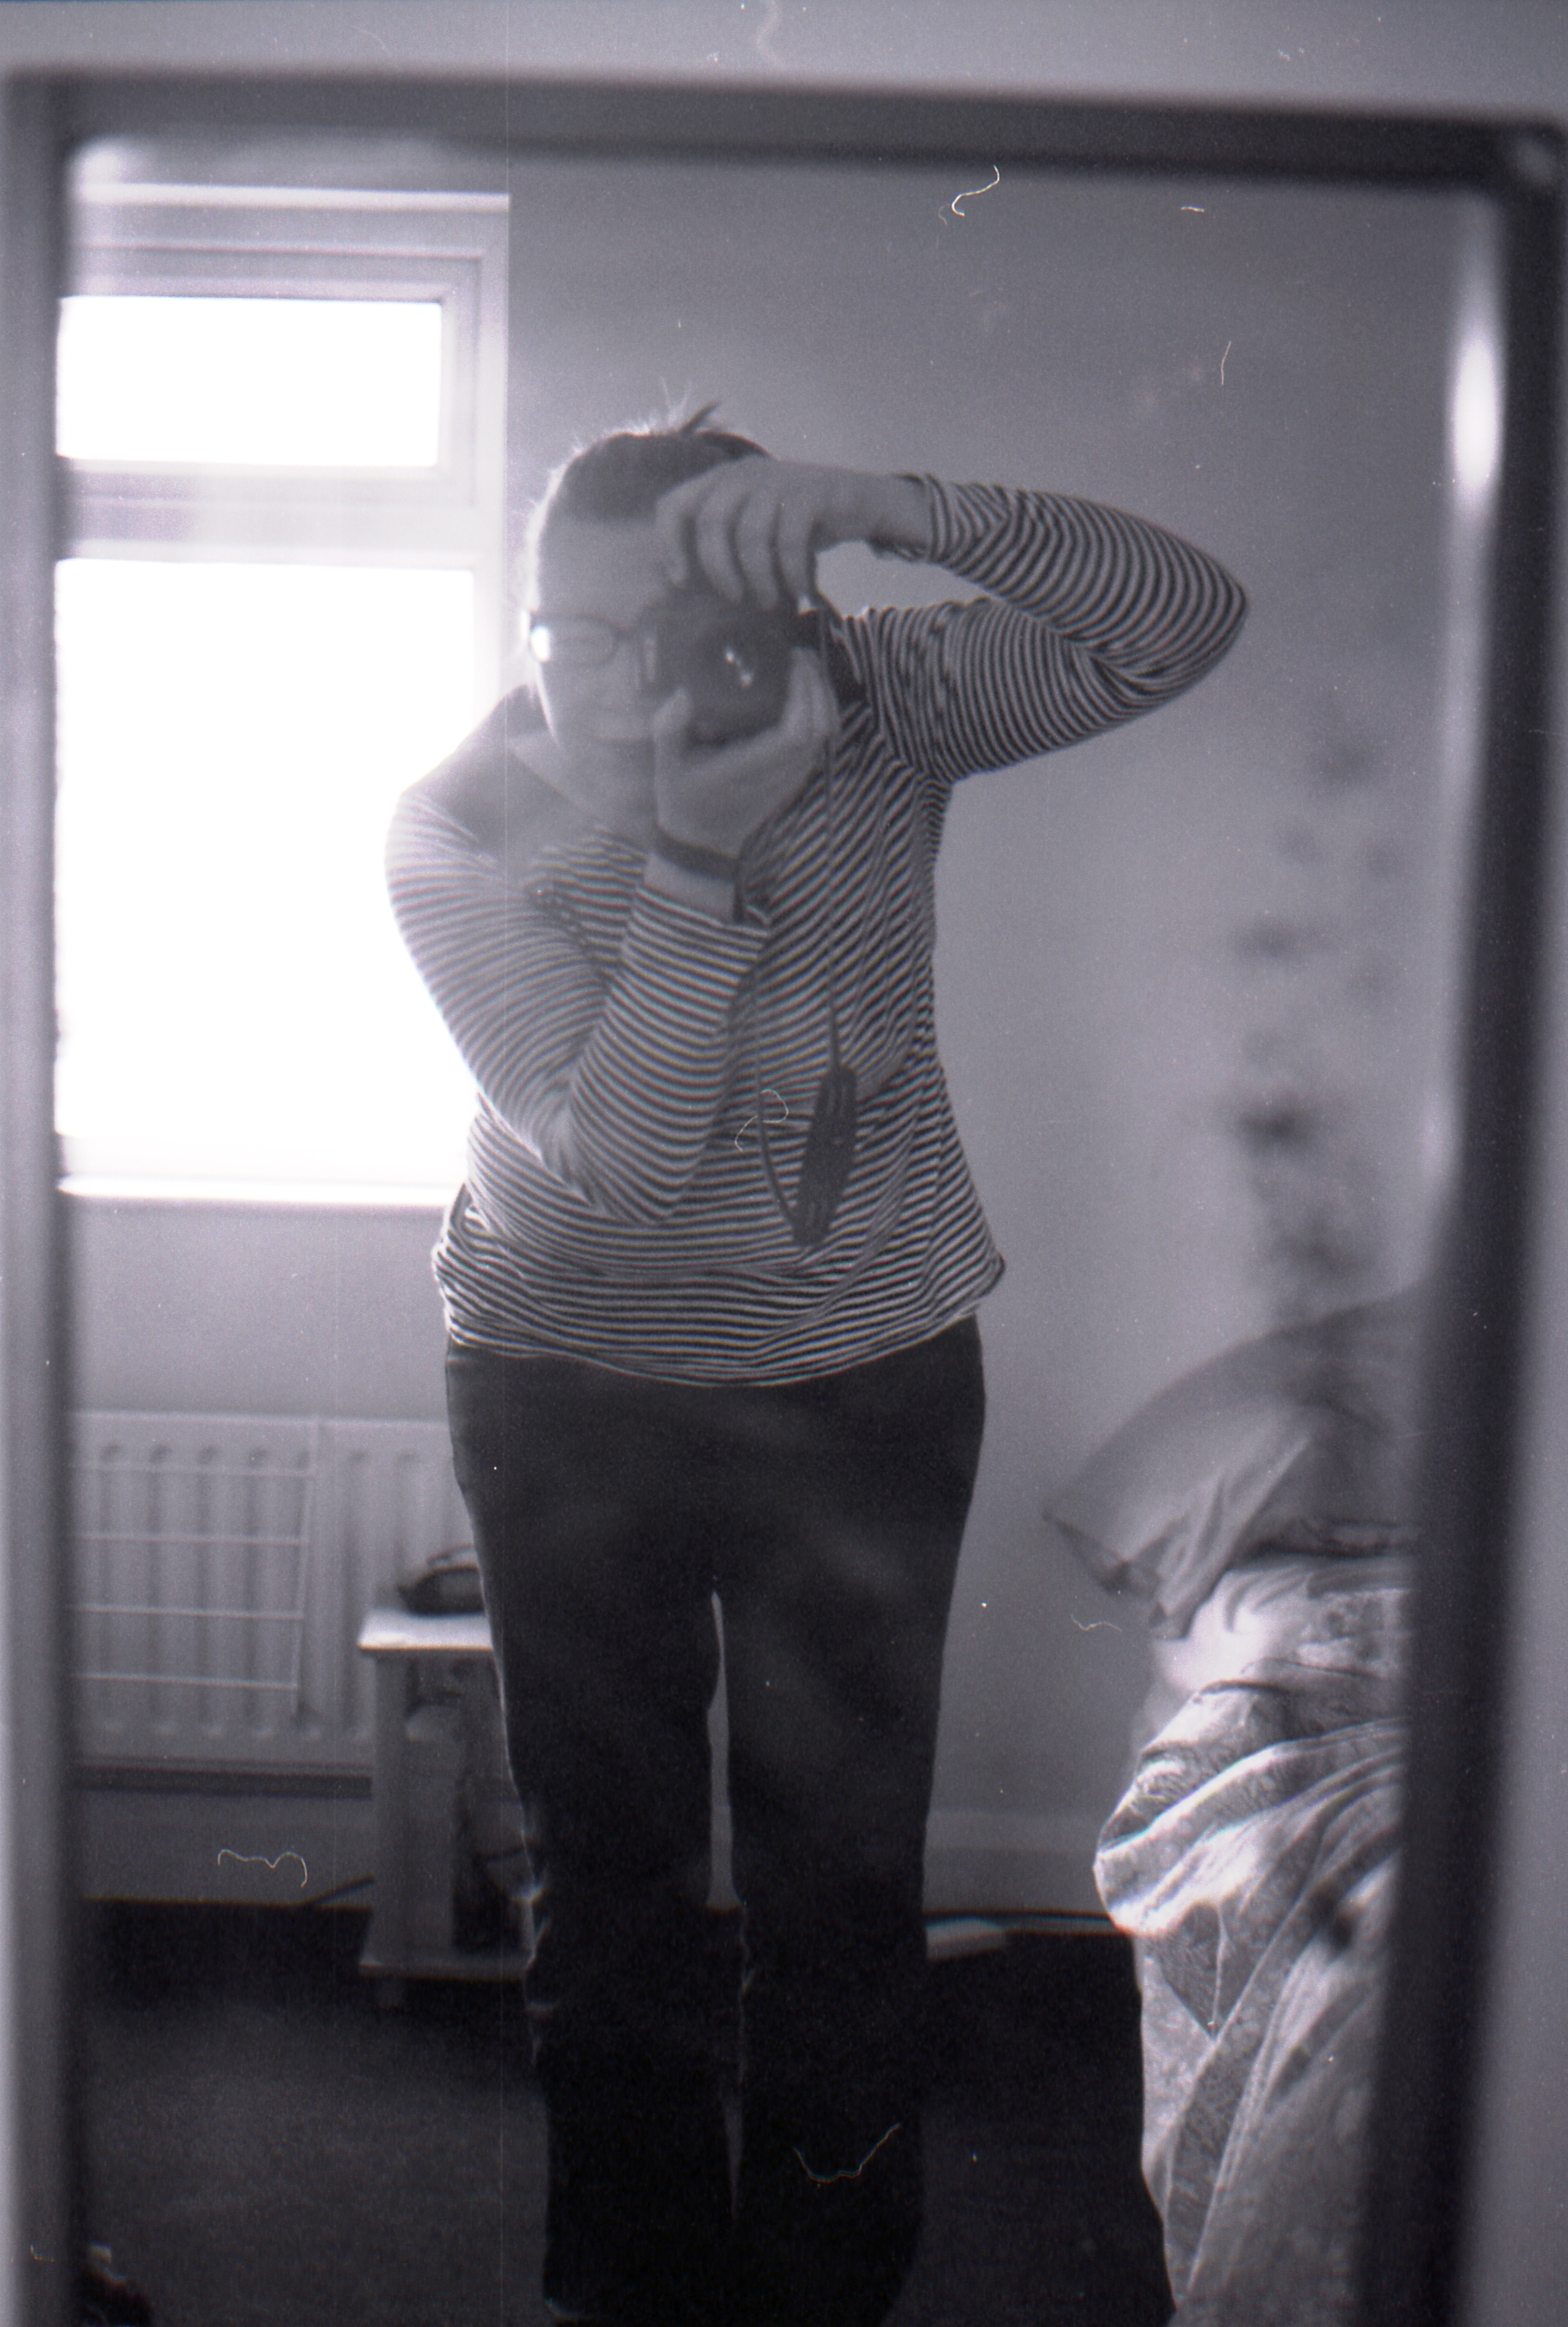 Day 108 - Oh hey! :) My trusty Canon EOS 750 and I in the dirty back room mirror ha. Classy